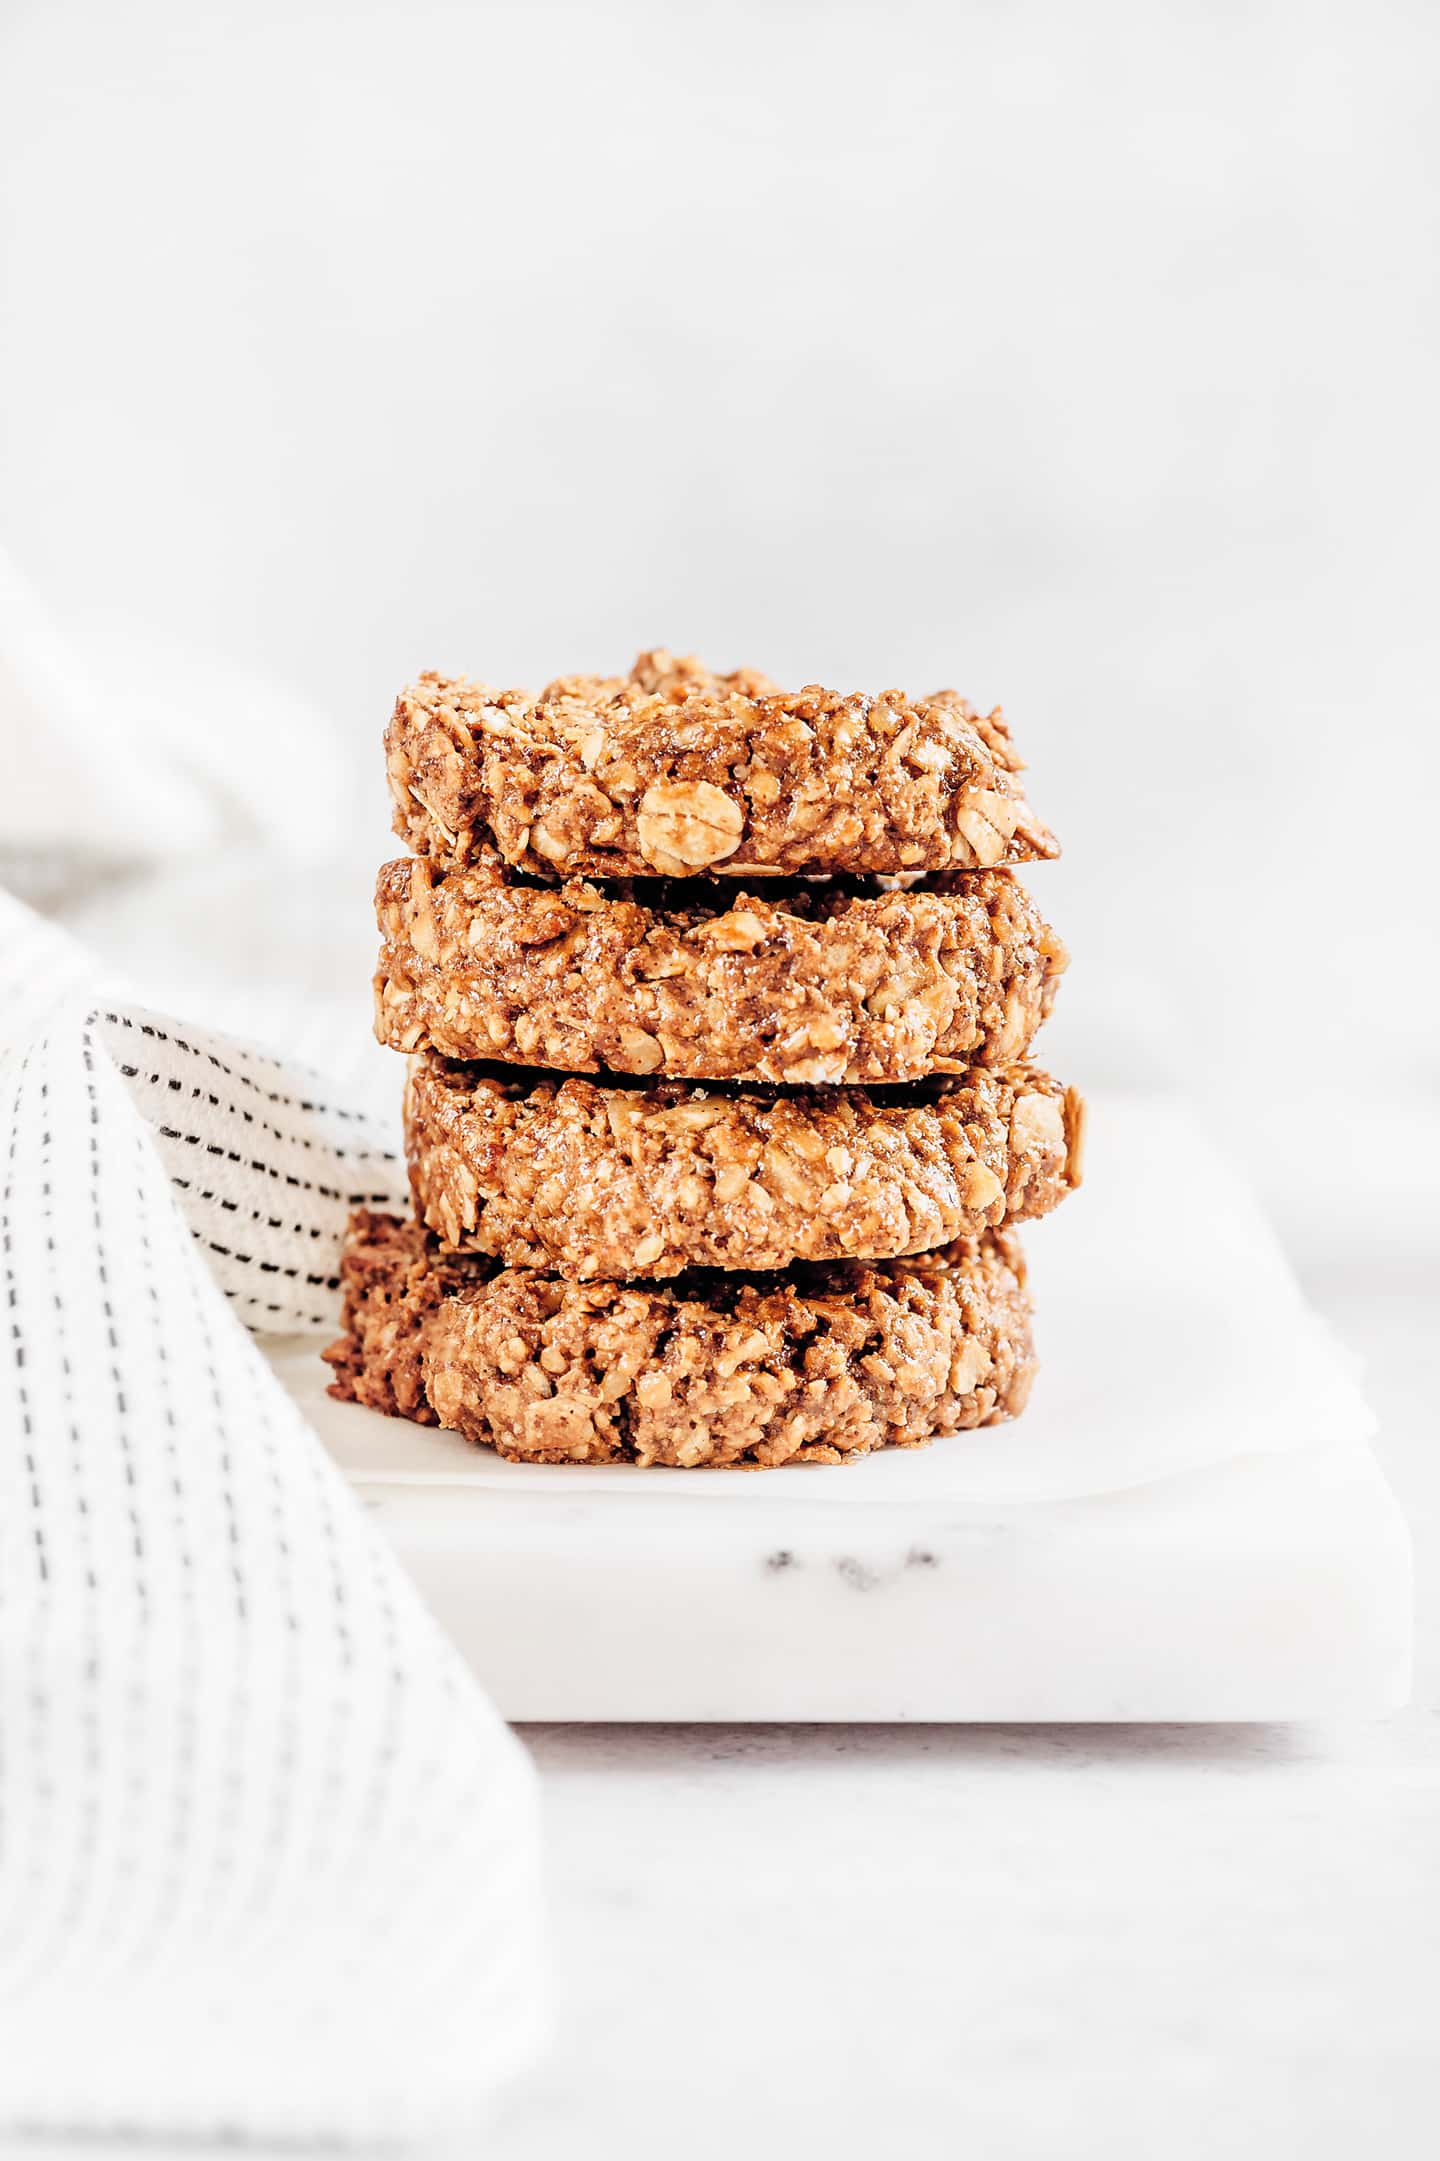 Comment faire des biscuits healthy aux flocons d'avoine